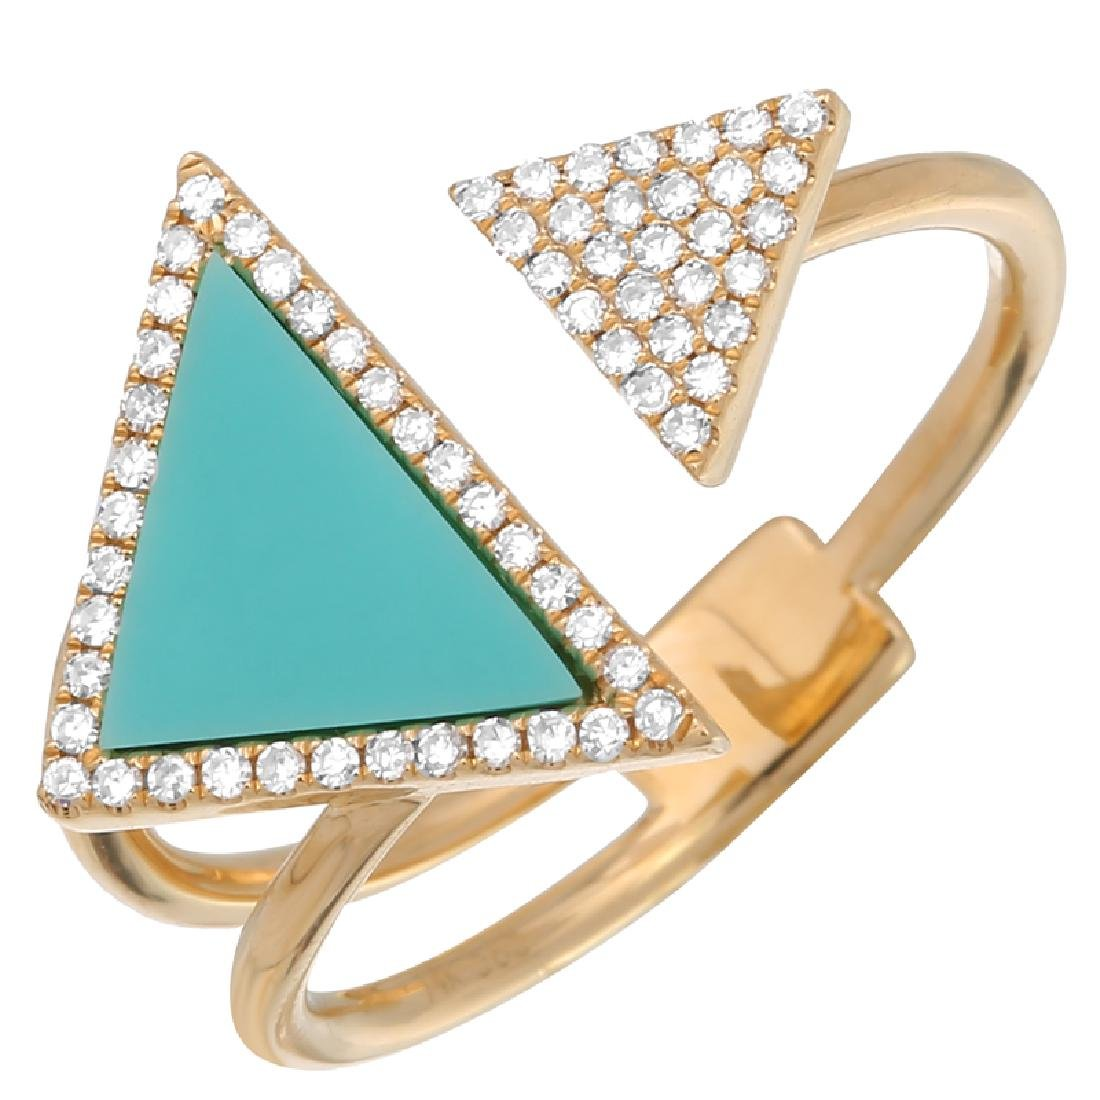 14KT Yellow Gold 0.77ctw Turquoise Diamond Ring Size